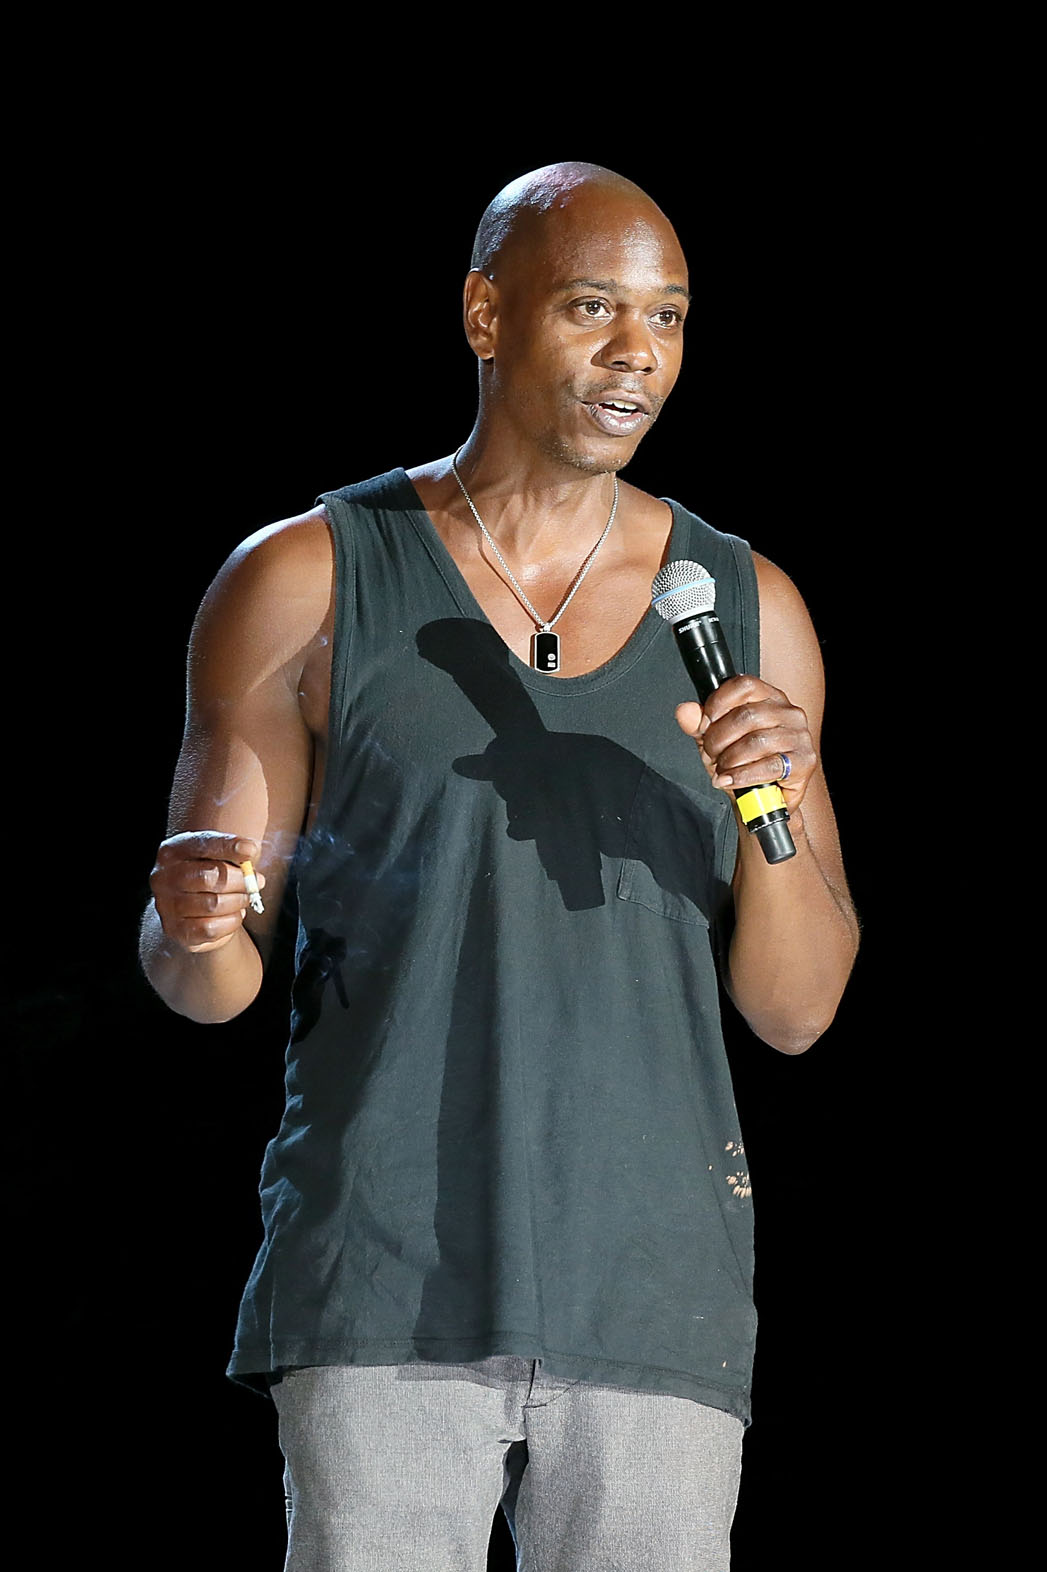 Dave Chapelle Funny or Die Oddball Comedy & Curiosity Tour - P 2013